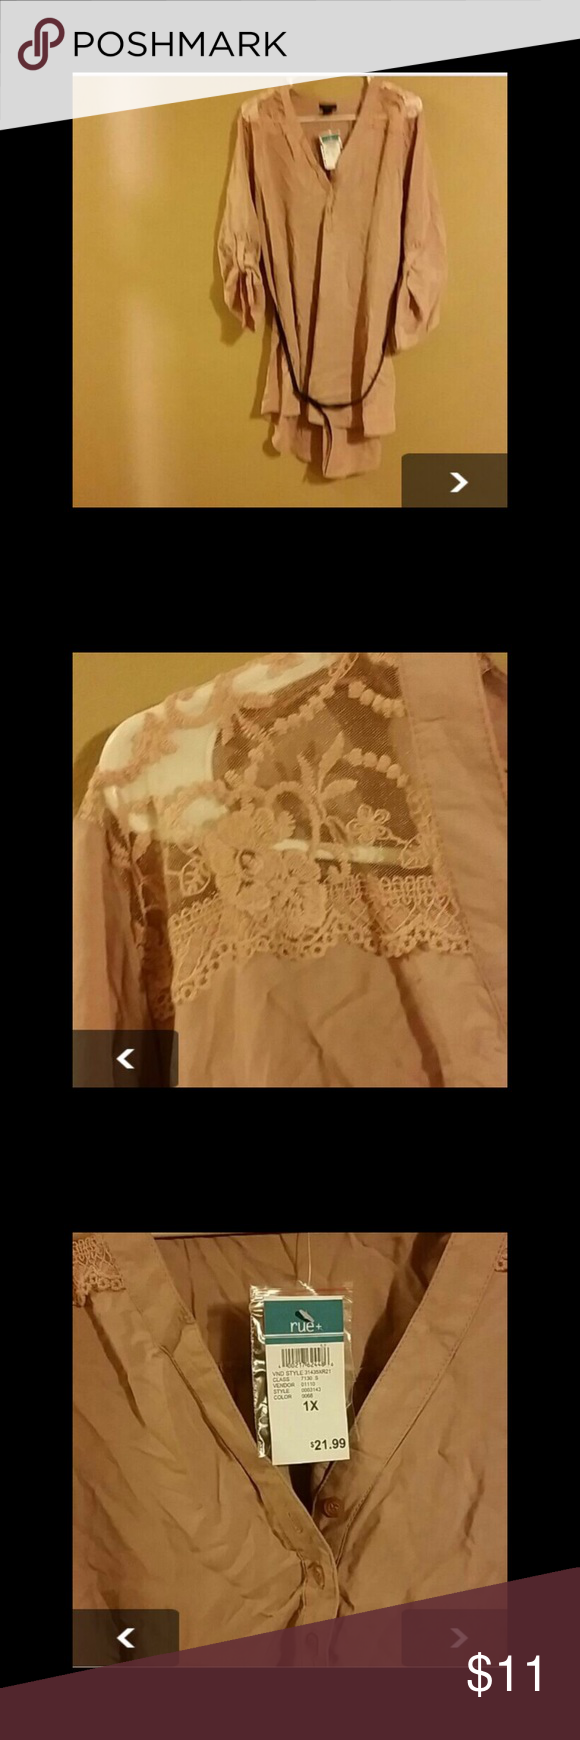 NWT Rue plus Rue blouse. So pretty pic doesn't do justice. Looks great with leggings. Tags on. Bought on here just too big for me Rue21 Tops Blouses